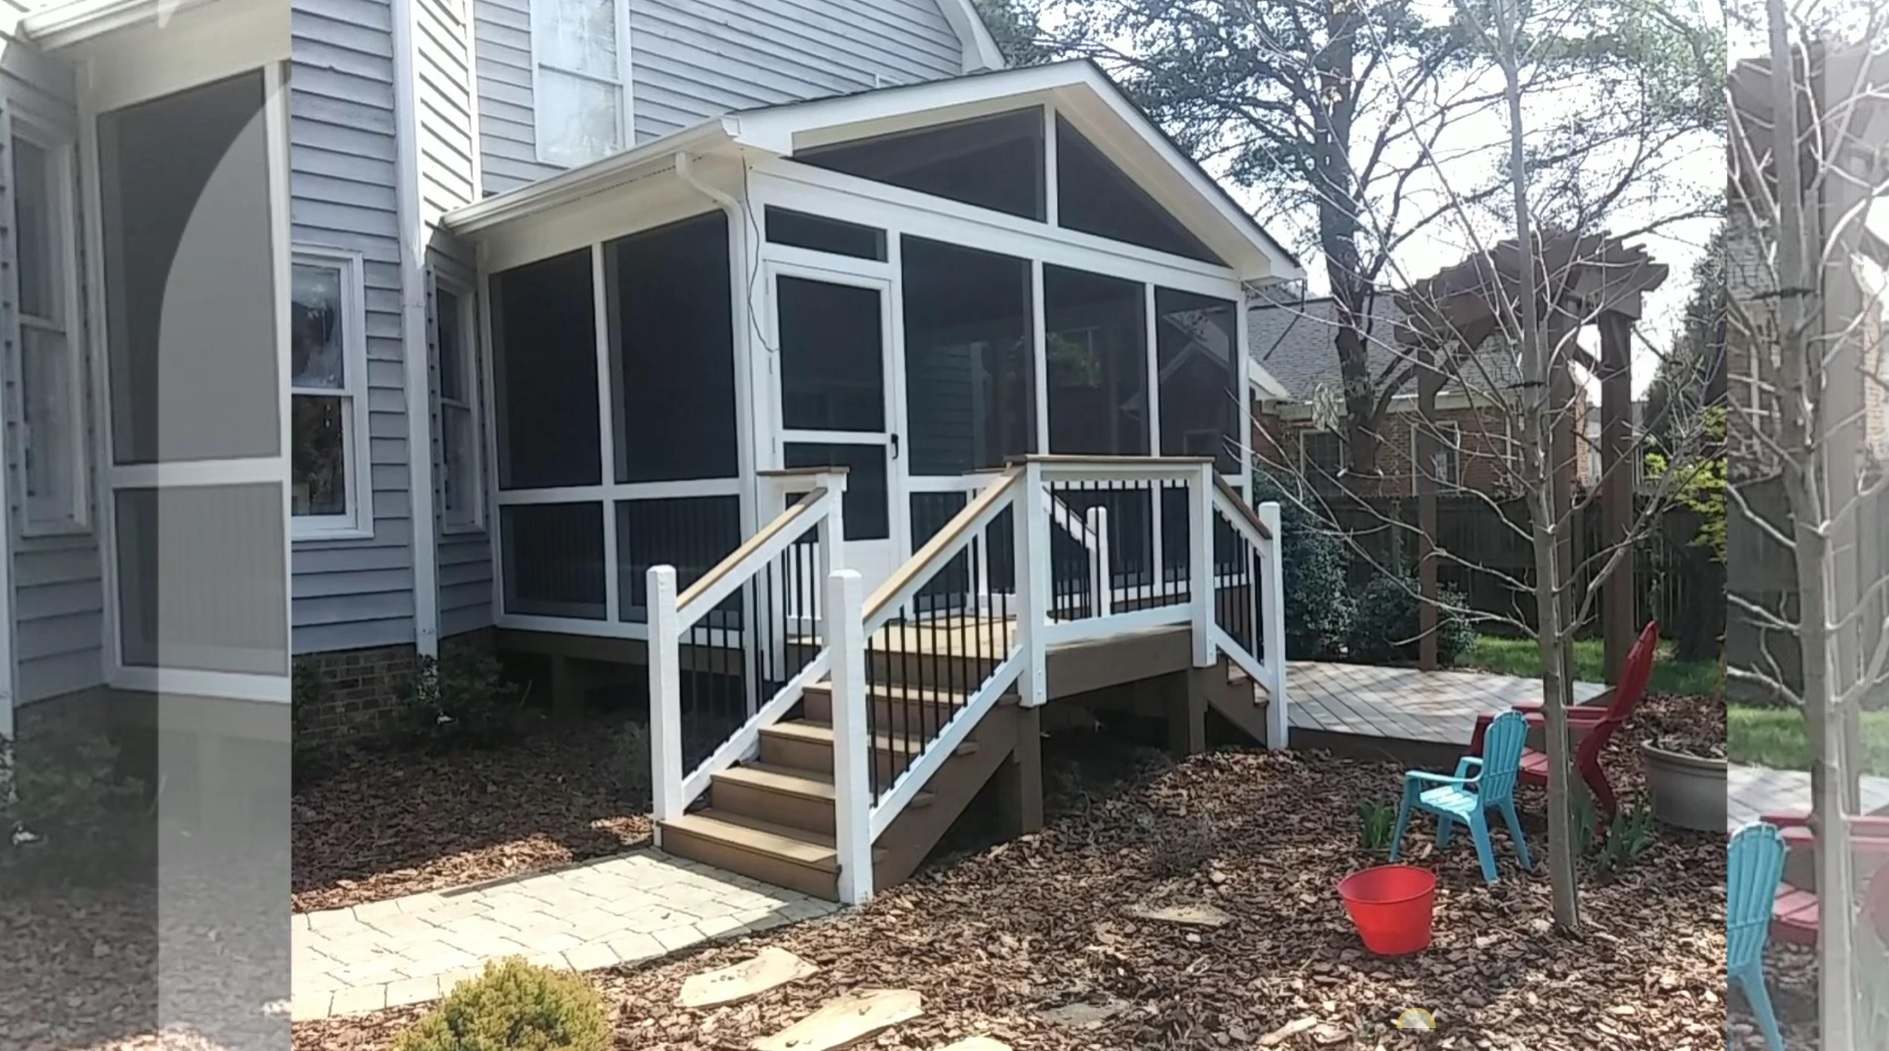 How to Choose Between a Screened Porch, 3-Season Room or Sunroom in Raleigh Thumbnail